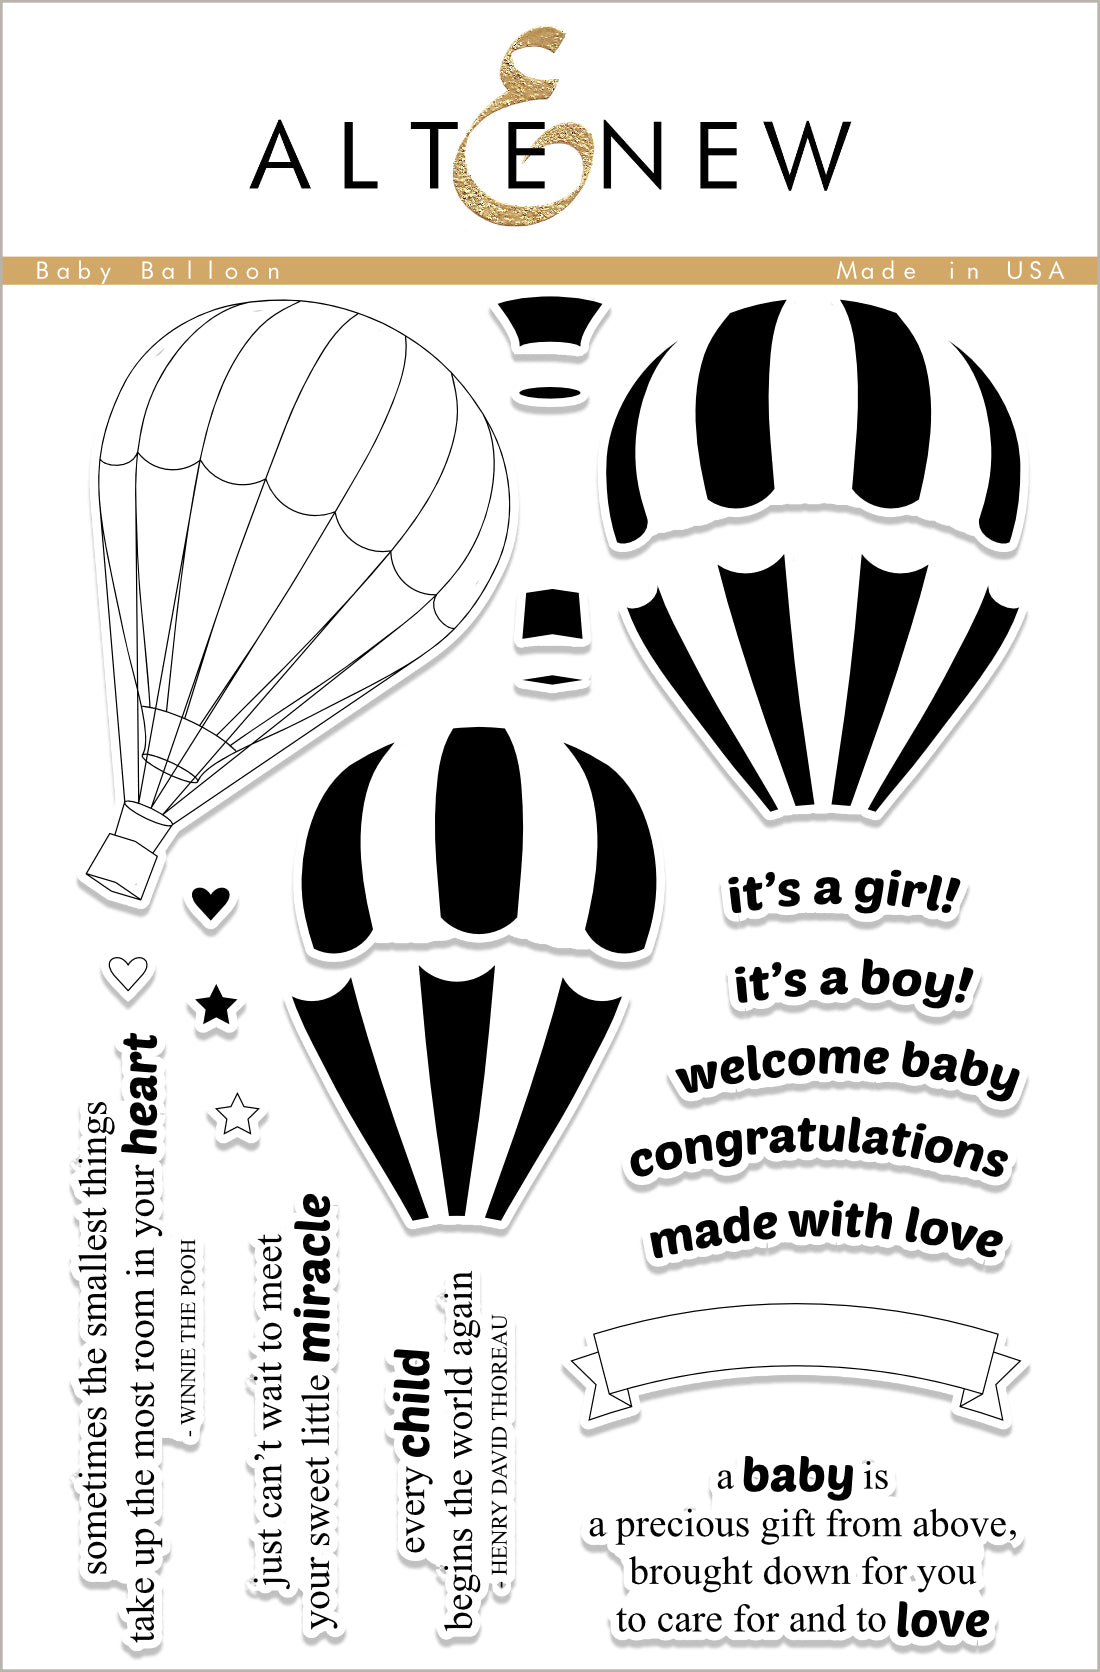 Altenew Baby Balloon Stamp Set | Serendipity Craft Boutique